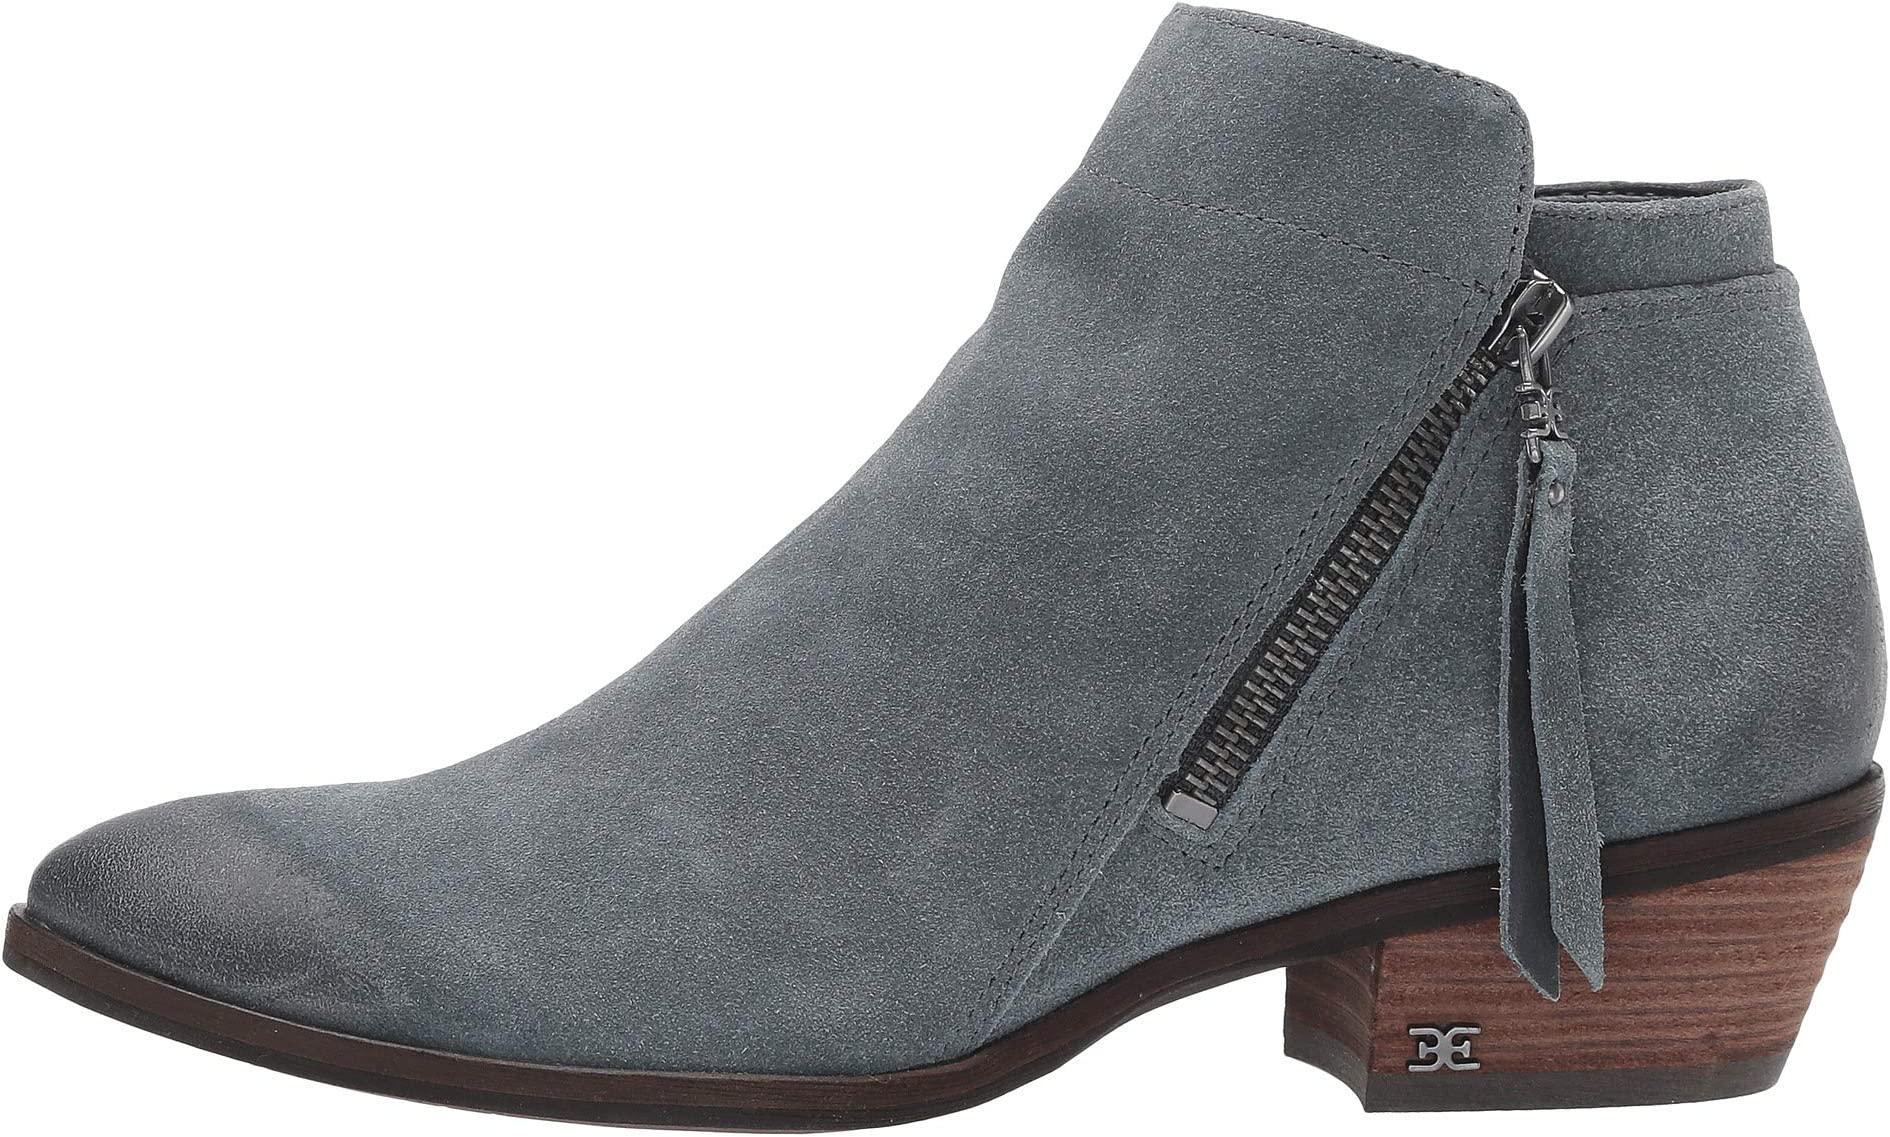 Sam Edelman Packer | Women's shoes | 2020 Newest